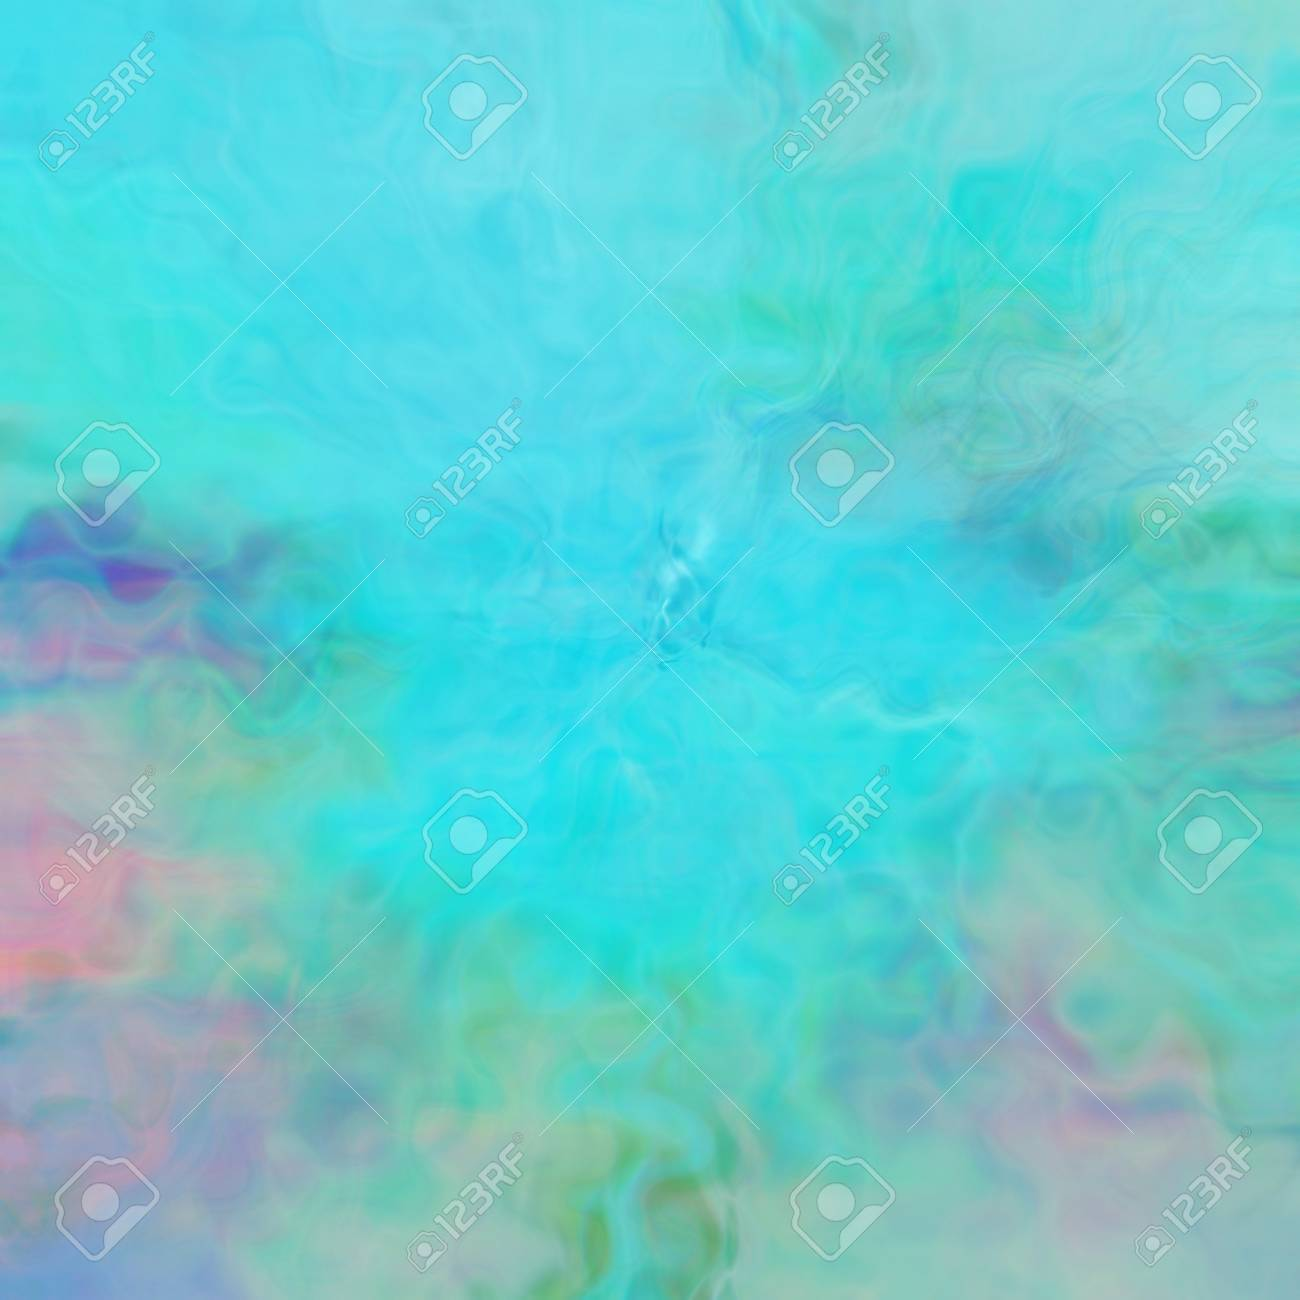 Grunge paint textured background with light and dark green brushstrokes Stock Photo - 17577289